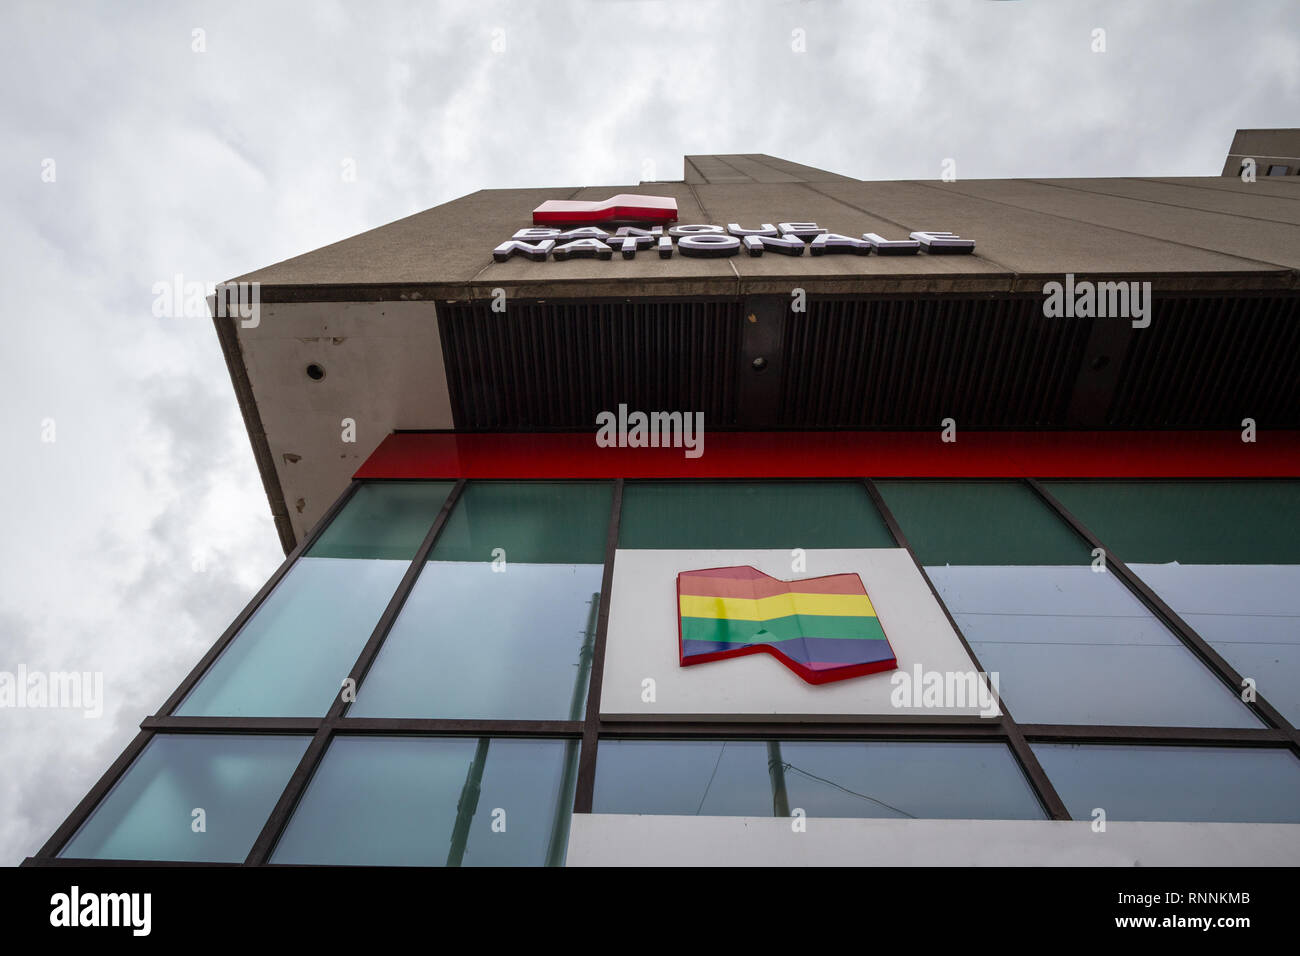 MONTREAL, CANADA - NOVEMBER 5, 2018:  Logo of the National Bank of Canada on their branch for the gay district le Village, with LGBT rainbow flag. Ban - Stock Image